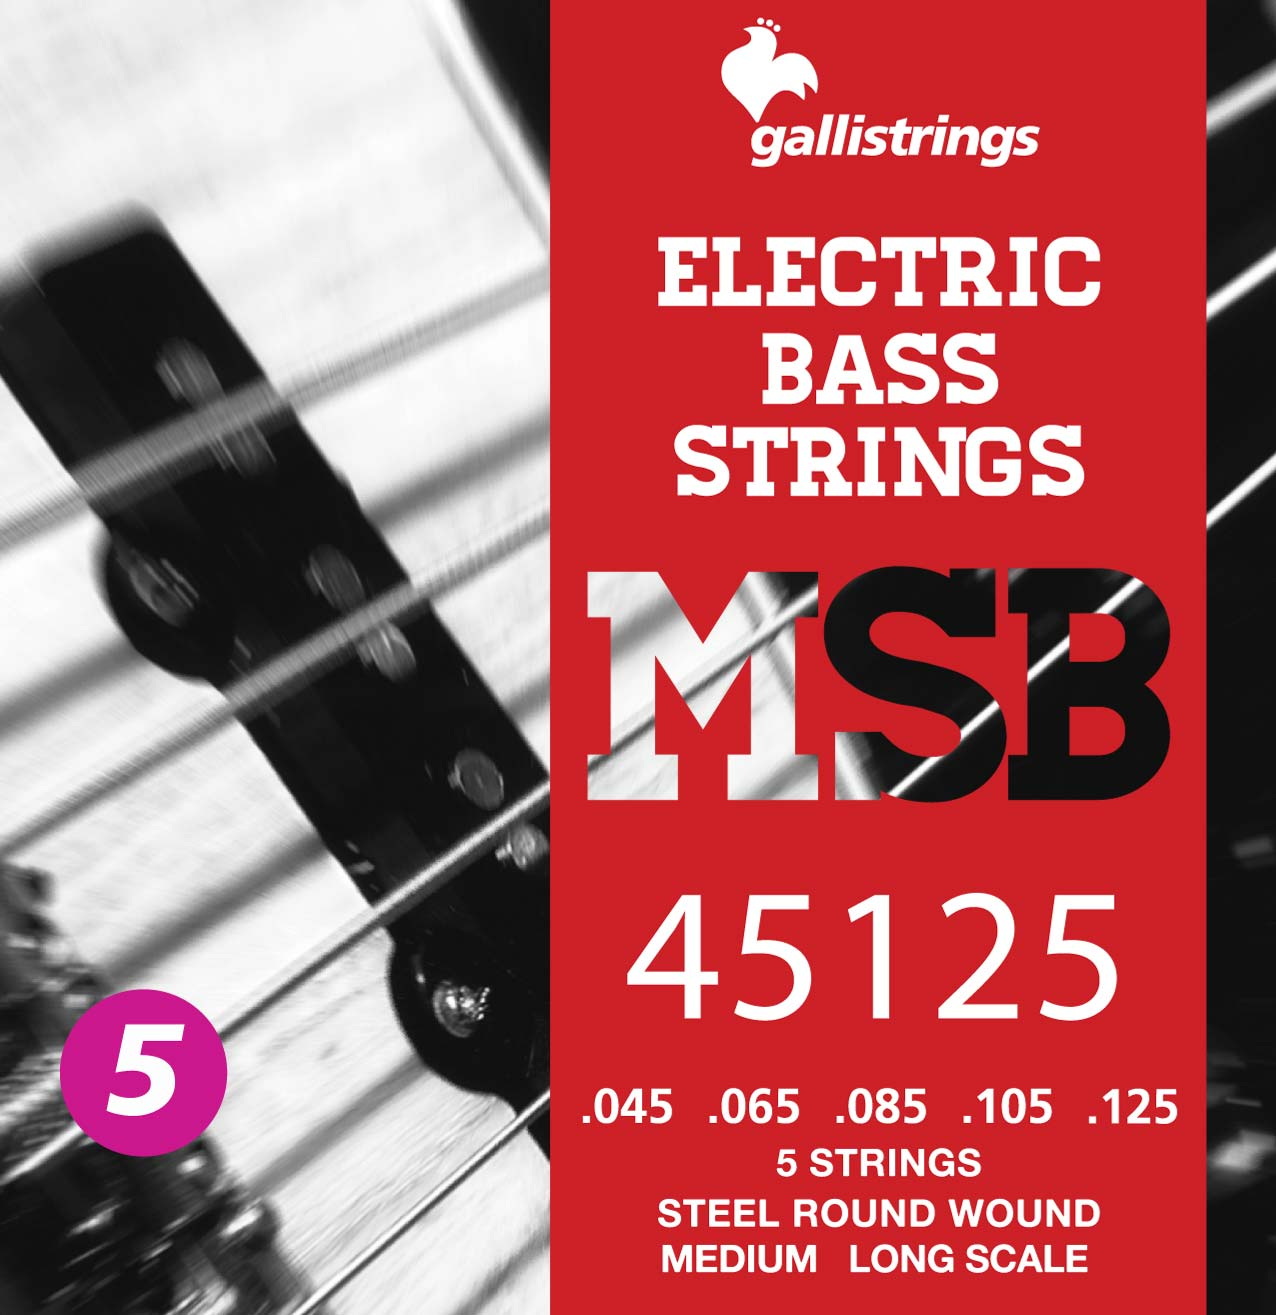 MSB45125 5 strings Medium